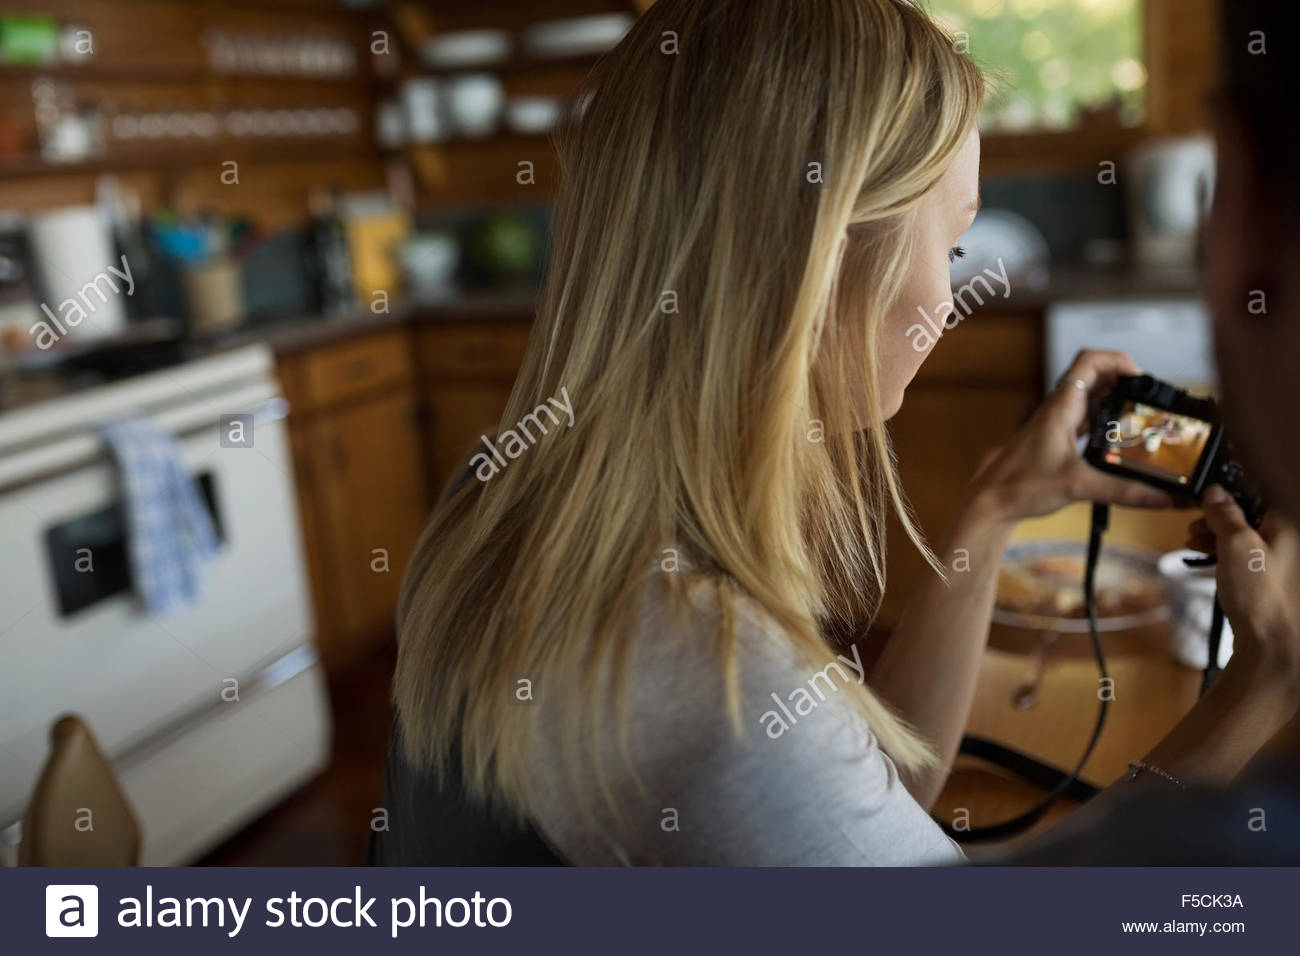 Young woman viewing digital camera in kitchen - Stock Image